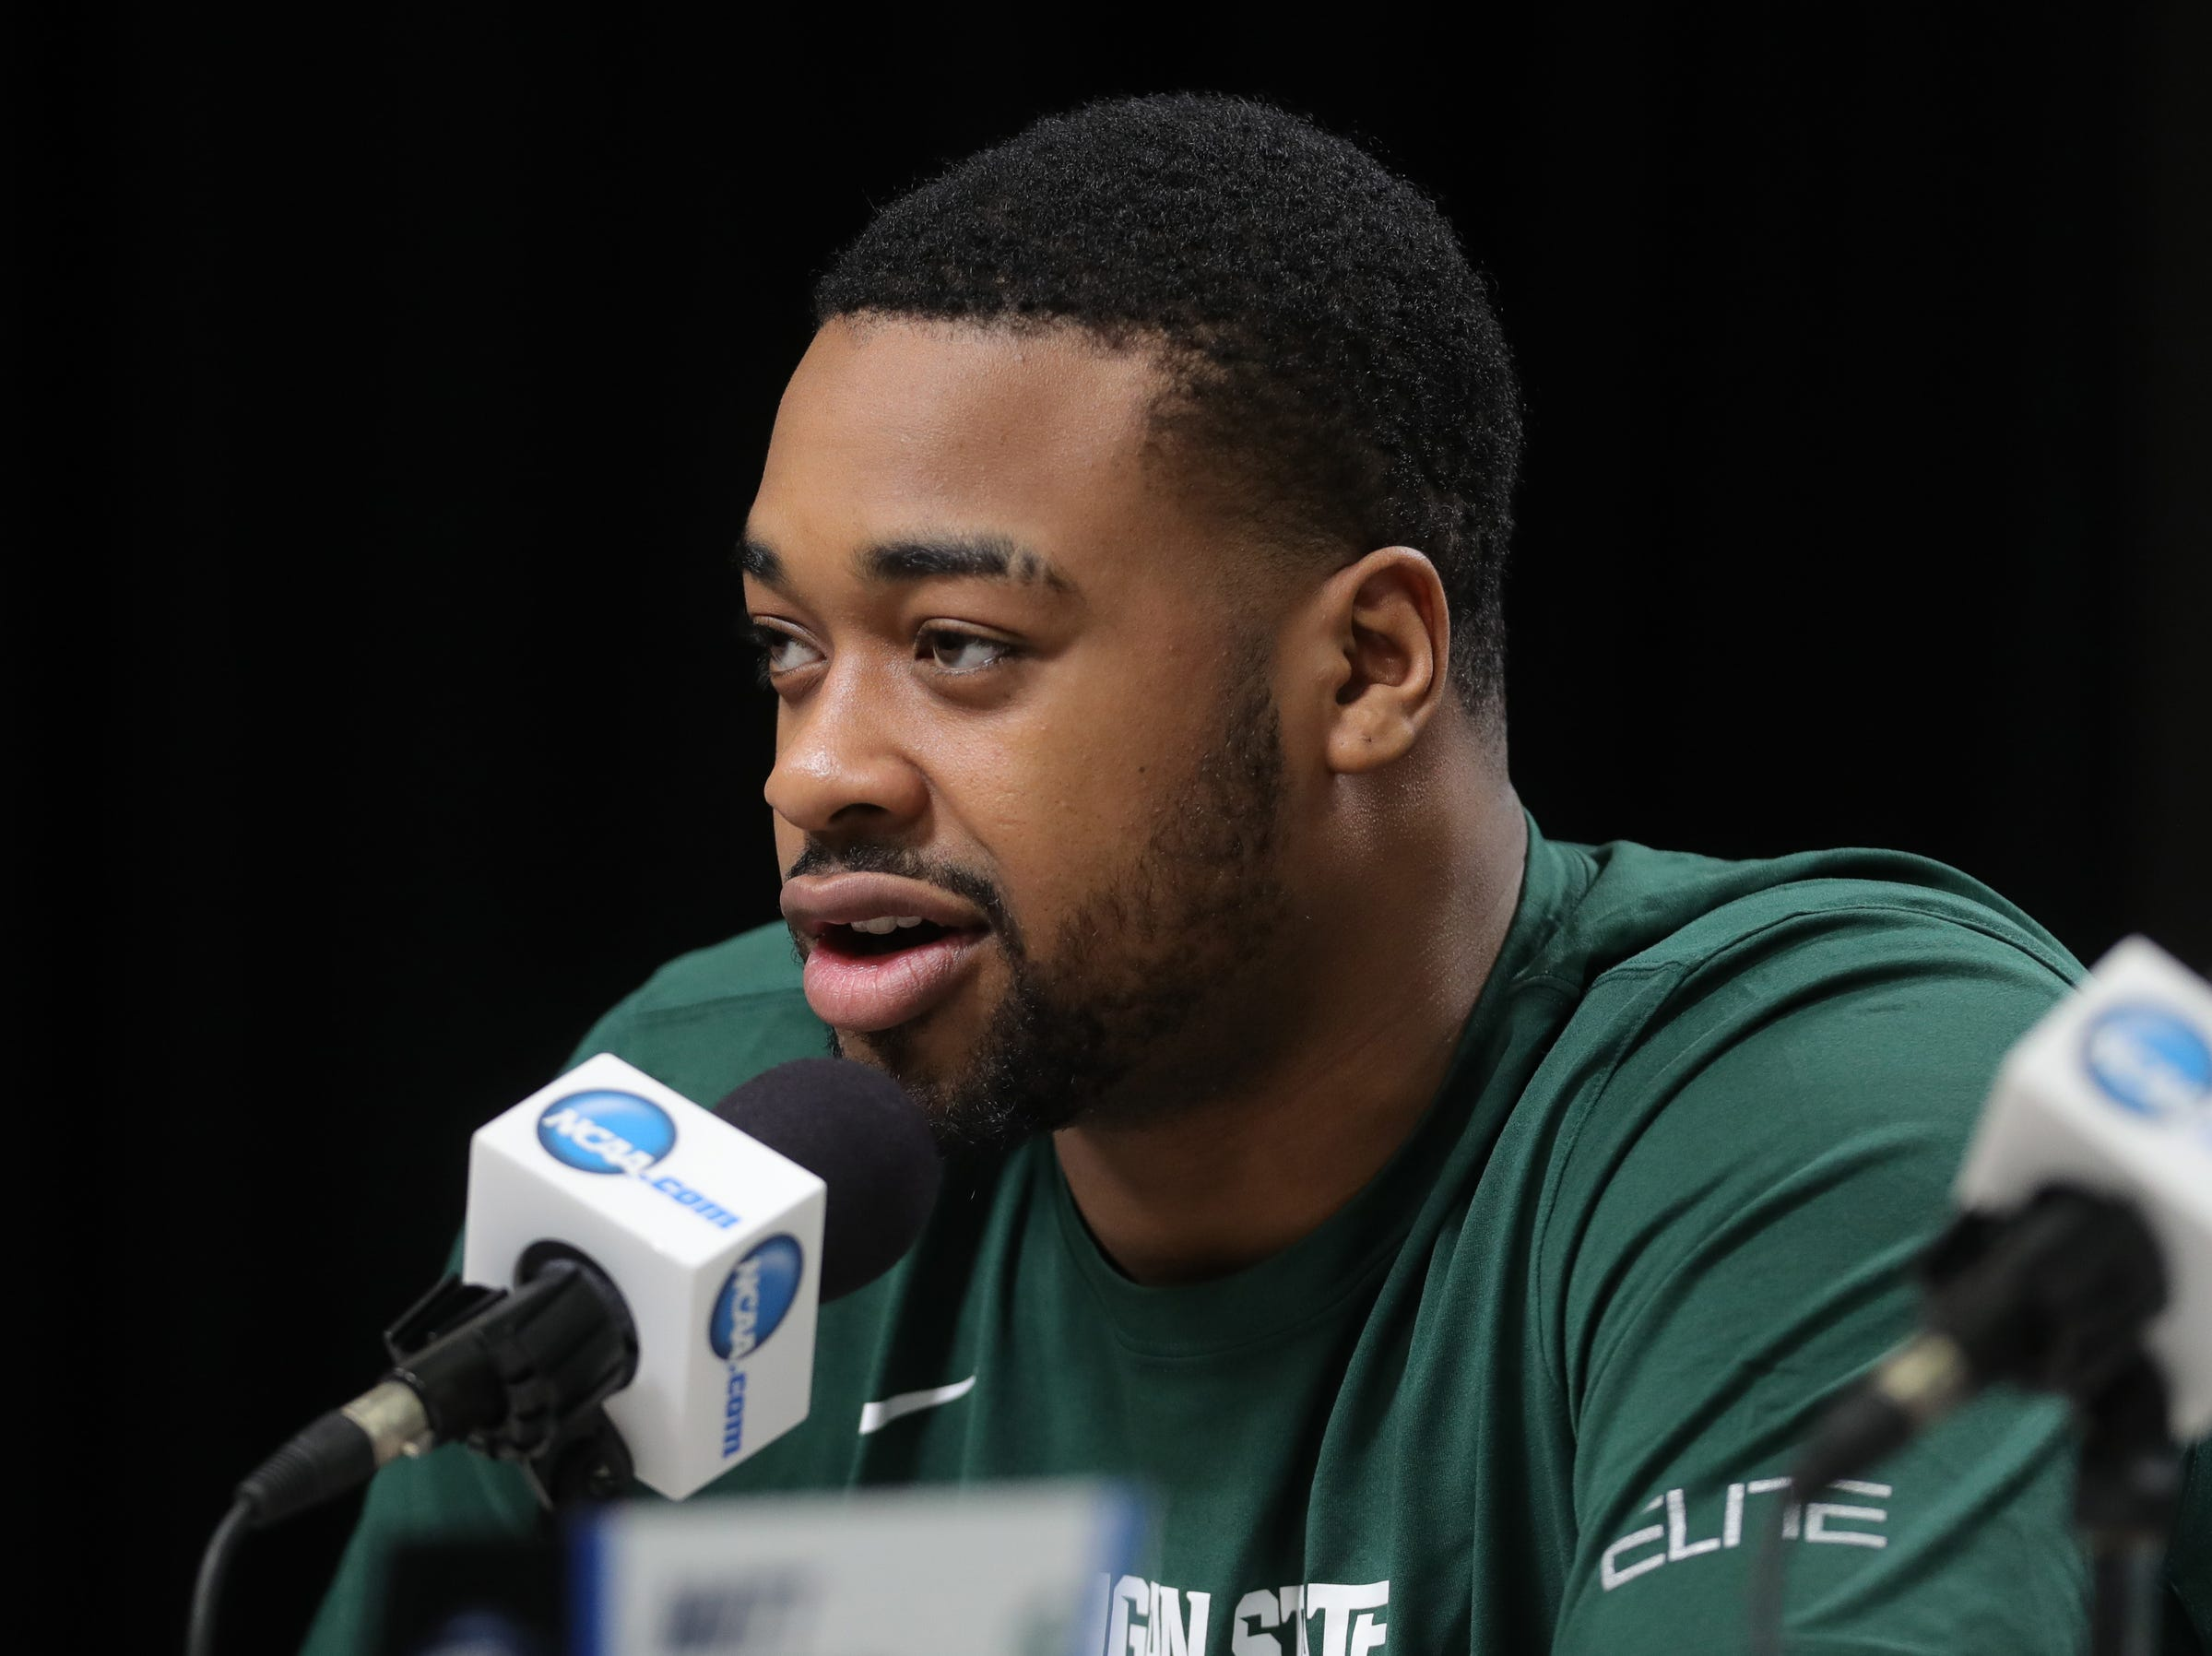 Michigan State forward Nick Ward talks with reporters about their Sweet 16 game against LSU, Thursday, March 28, 2019 at the Capital One Arena in Washington, D.C.